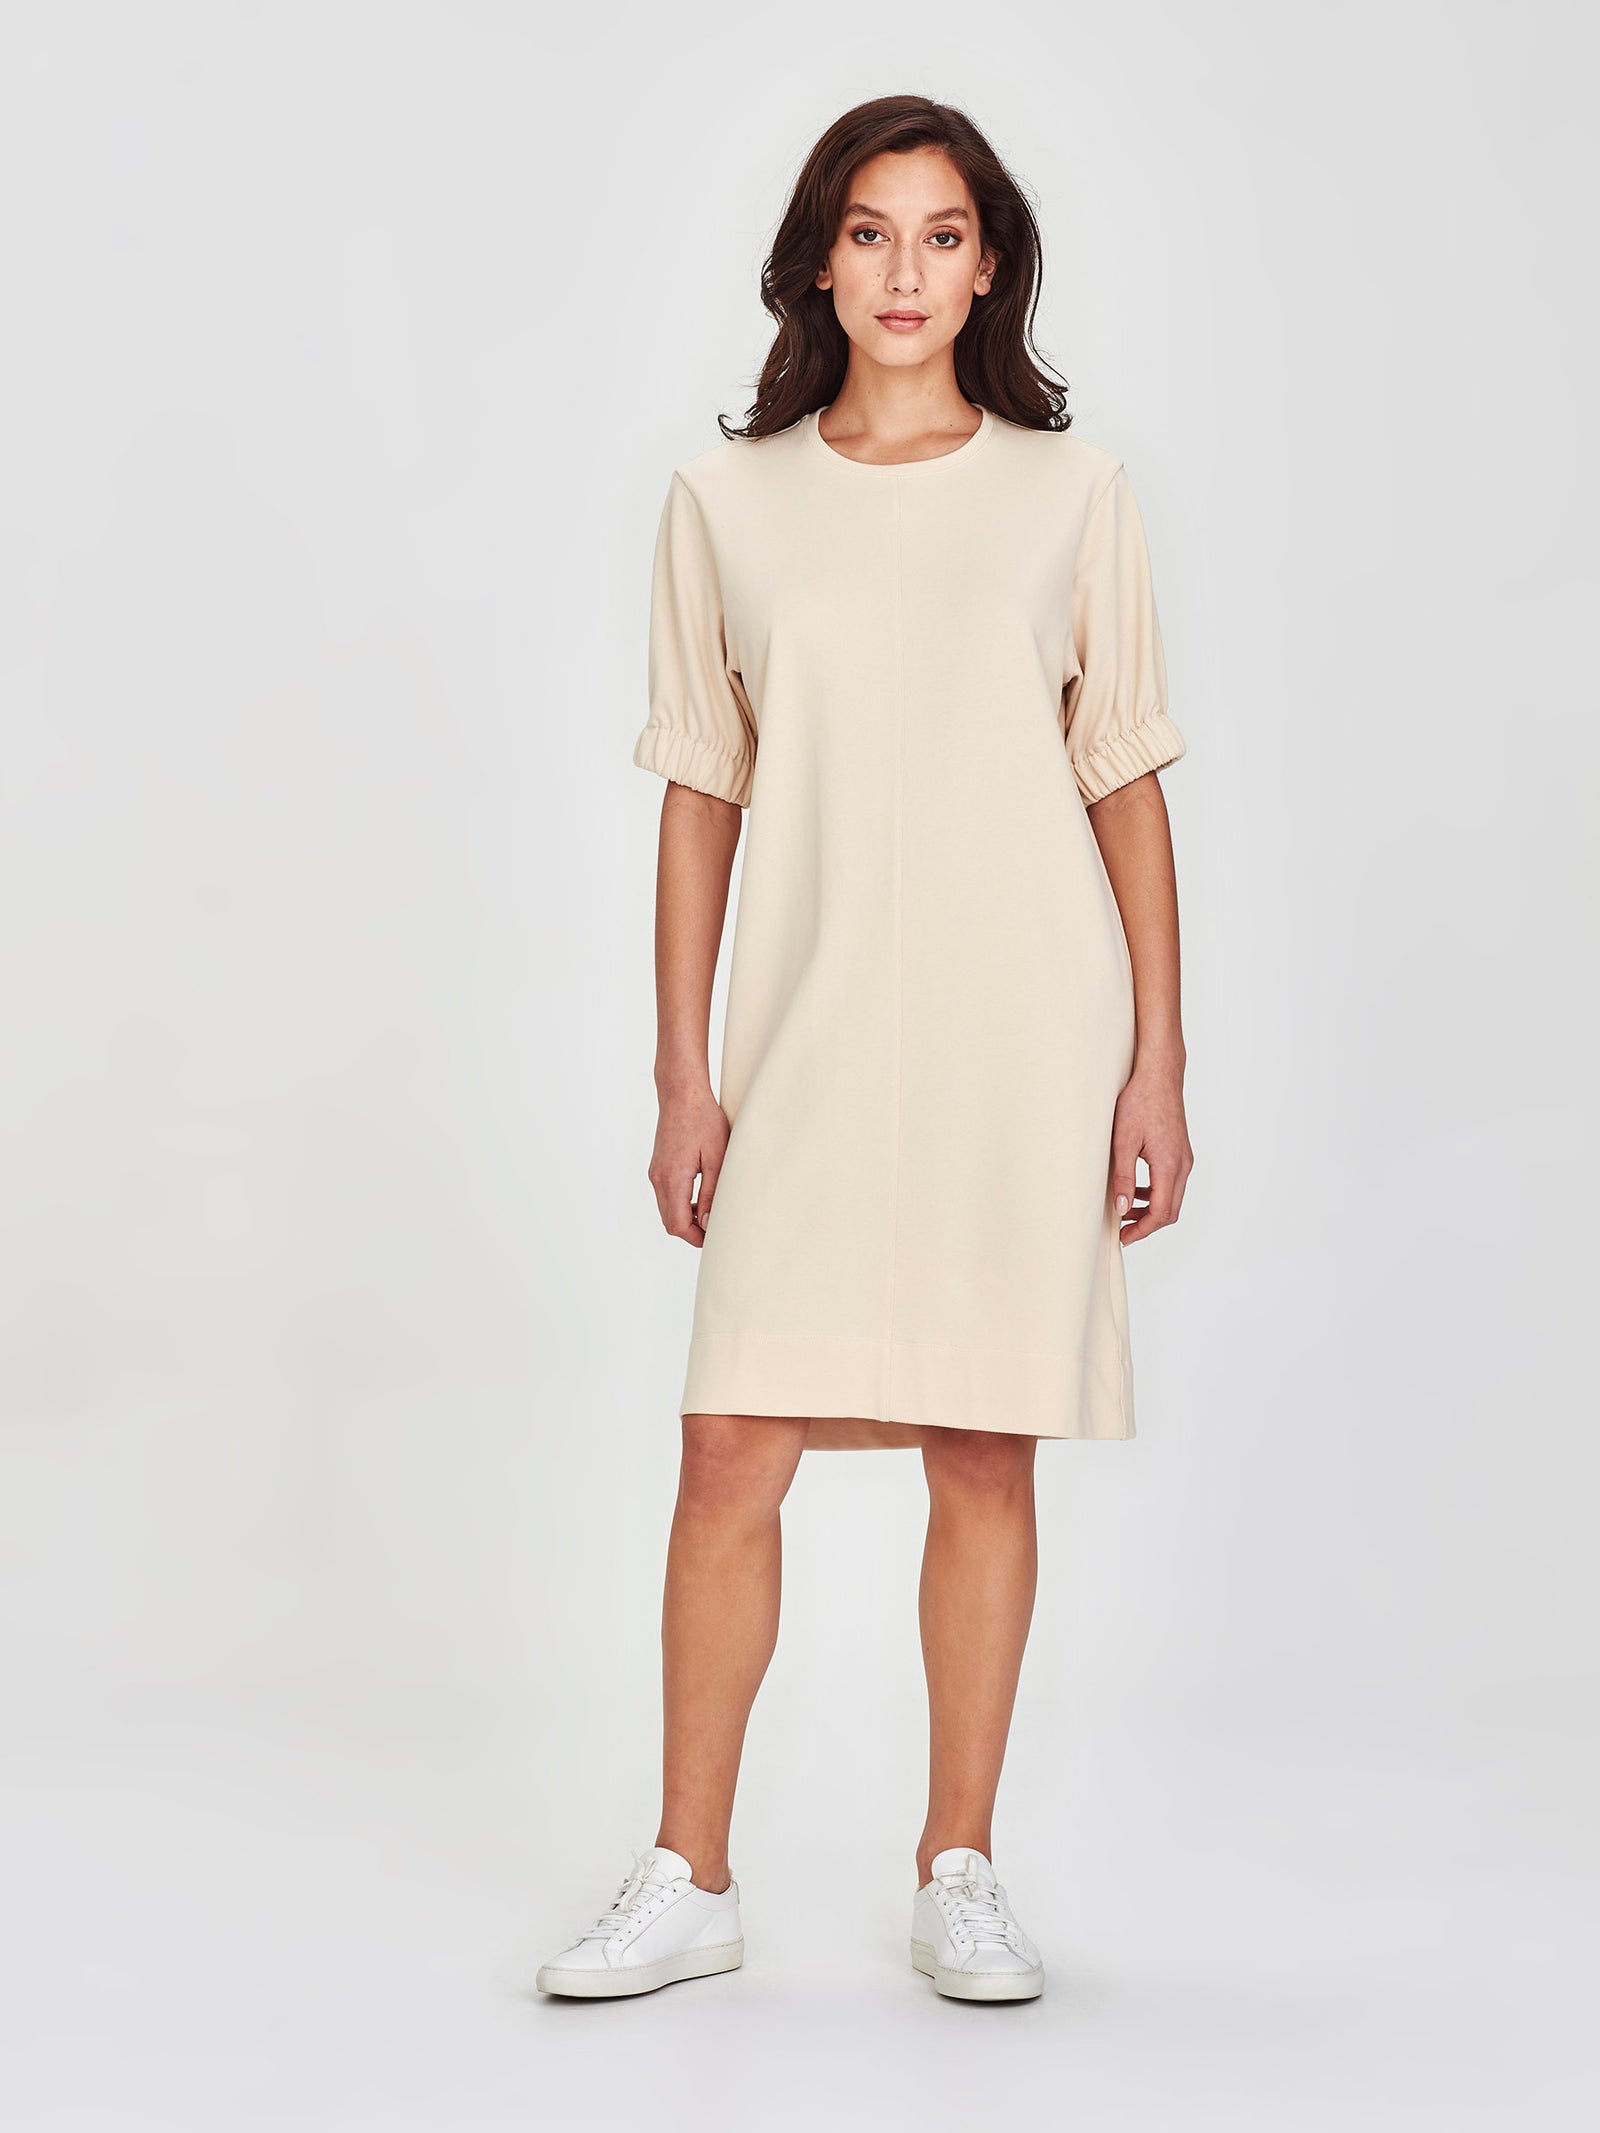 Blossom Dress (Terry Knit) Buttermilk